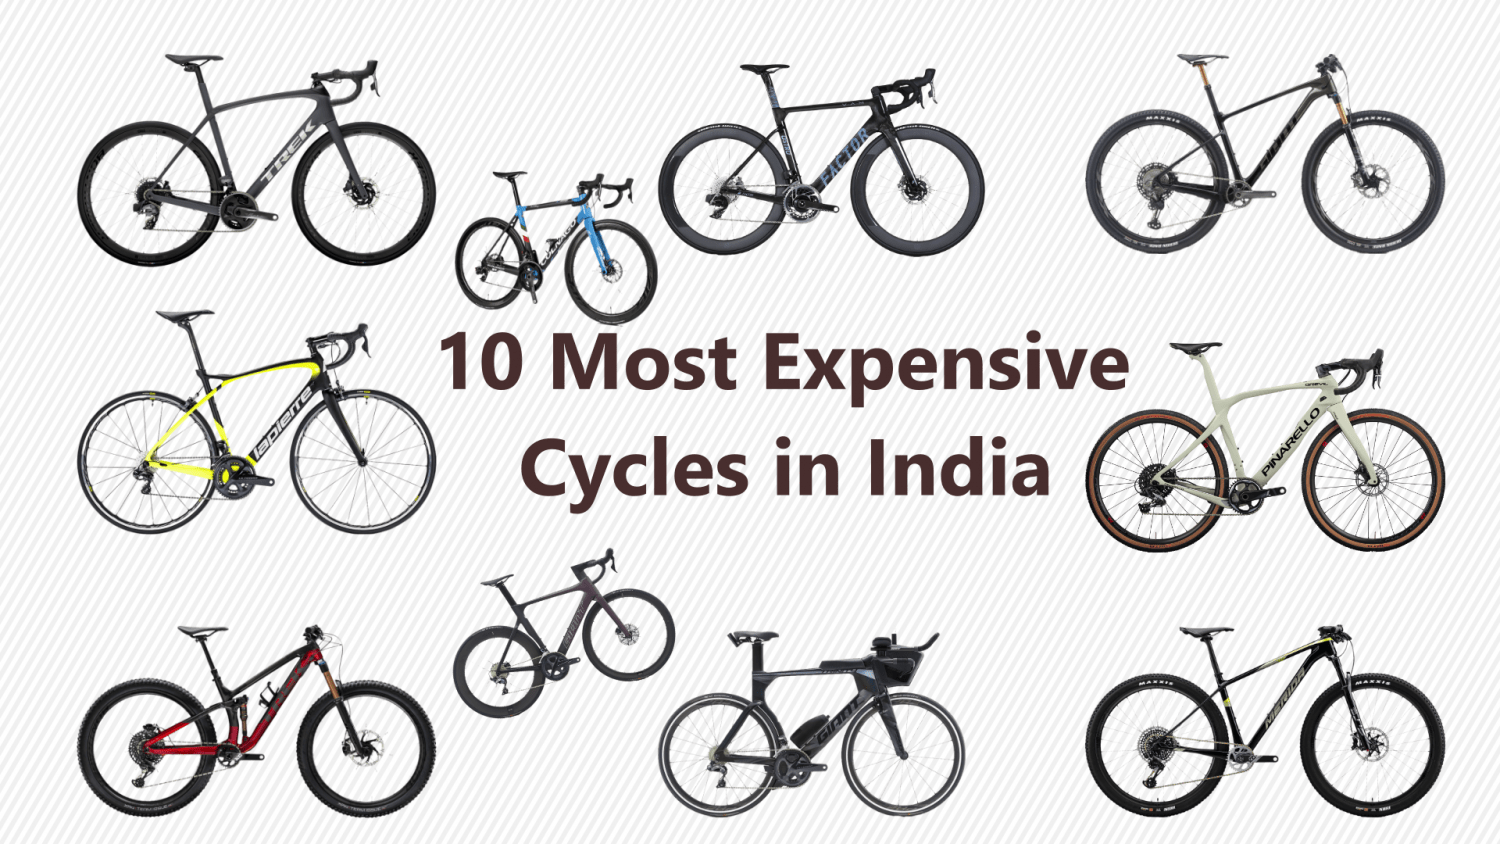 10 most expensive cycles in India